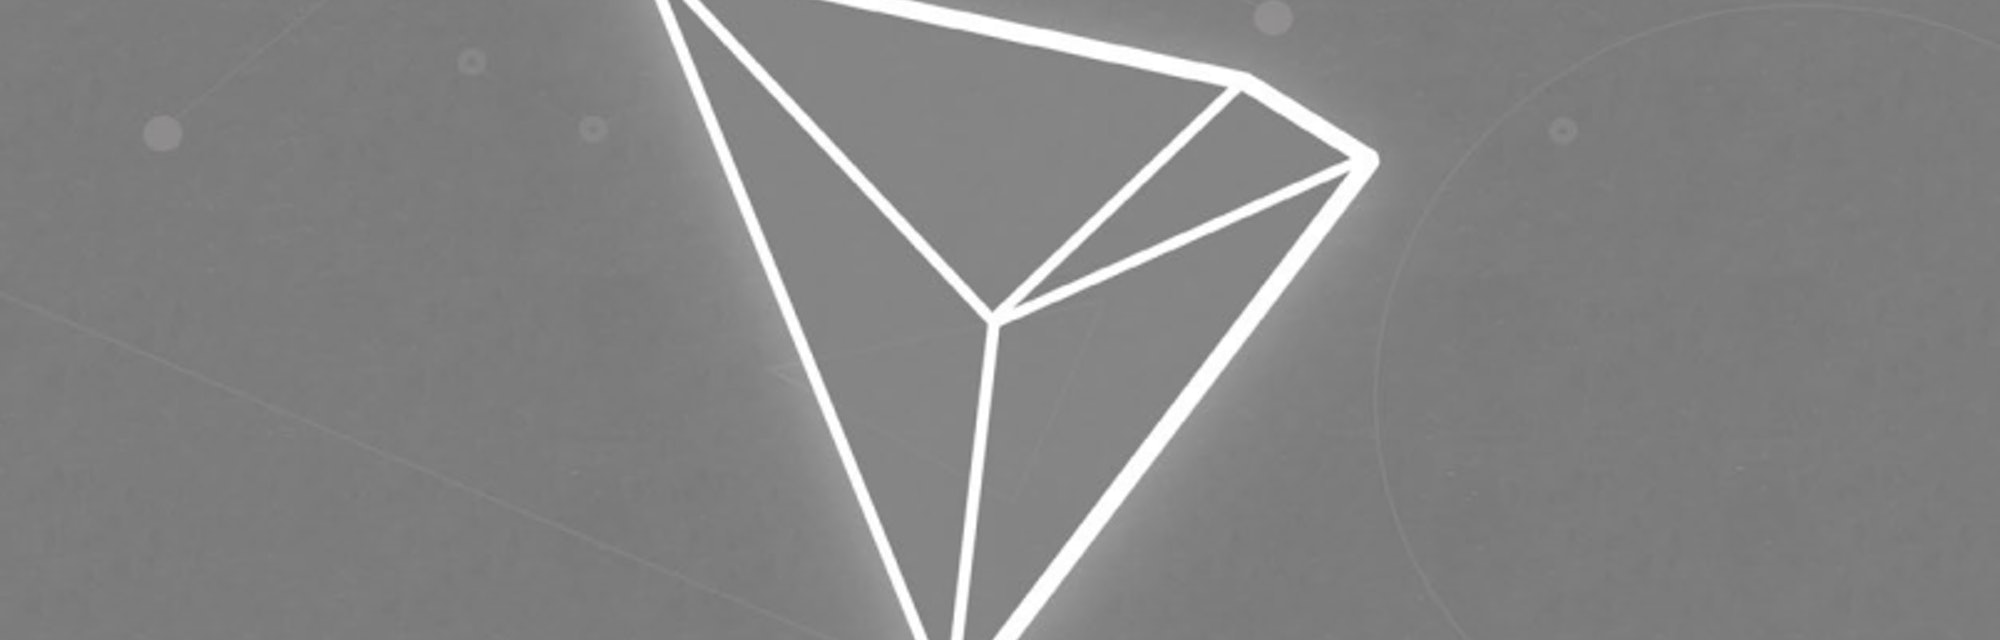 tron coin penny cryptocurrency